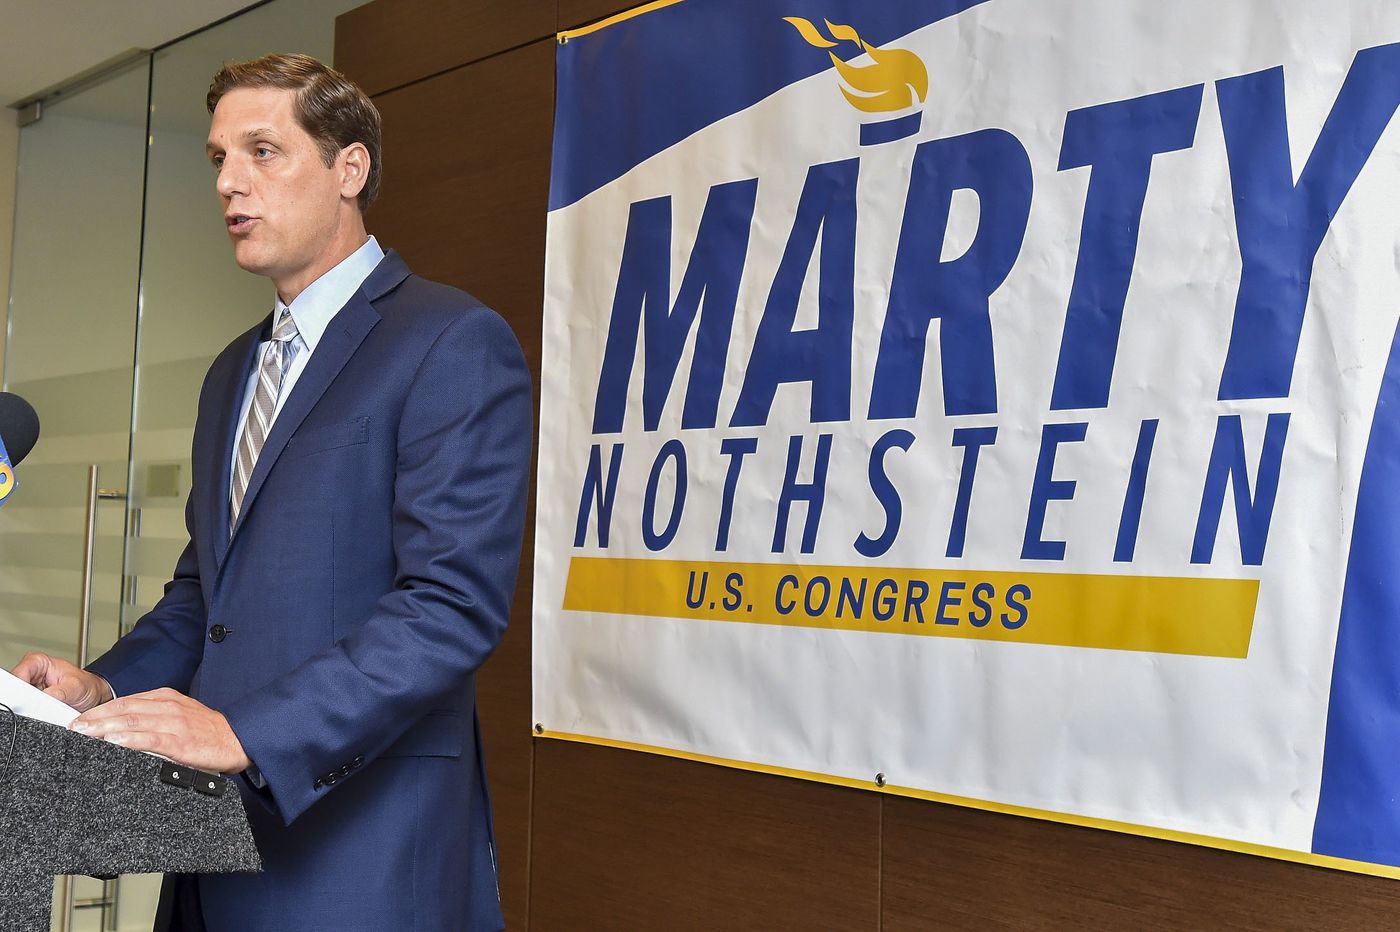 Pa. congressional candidate says he's cleared of misconduct allegations